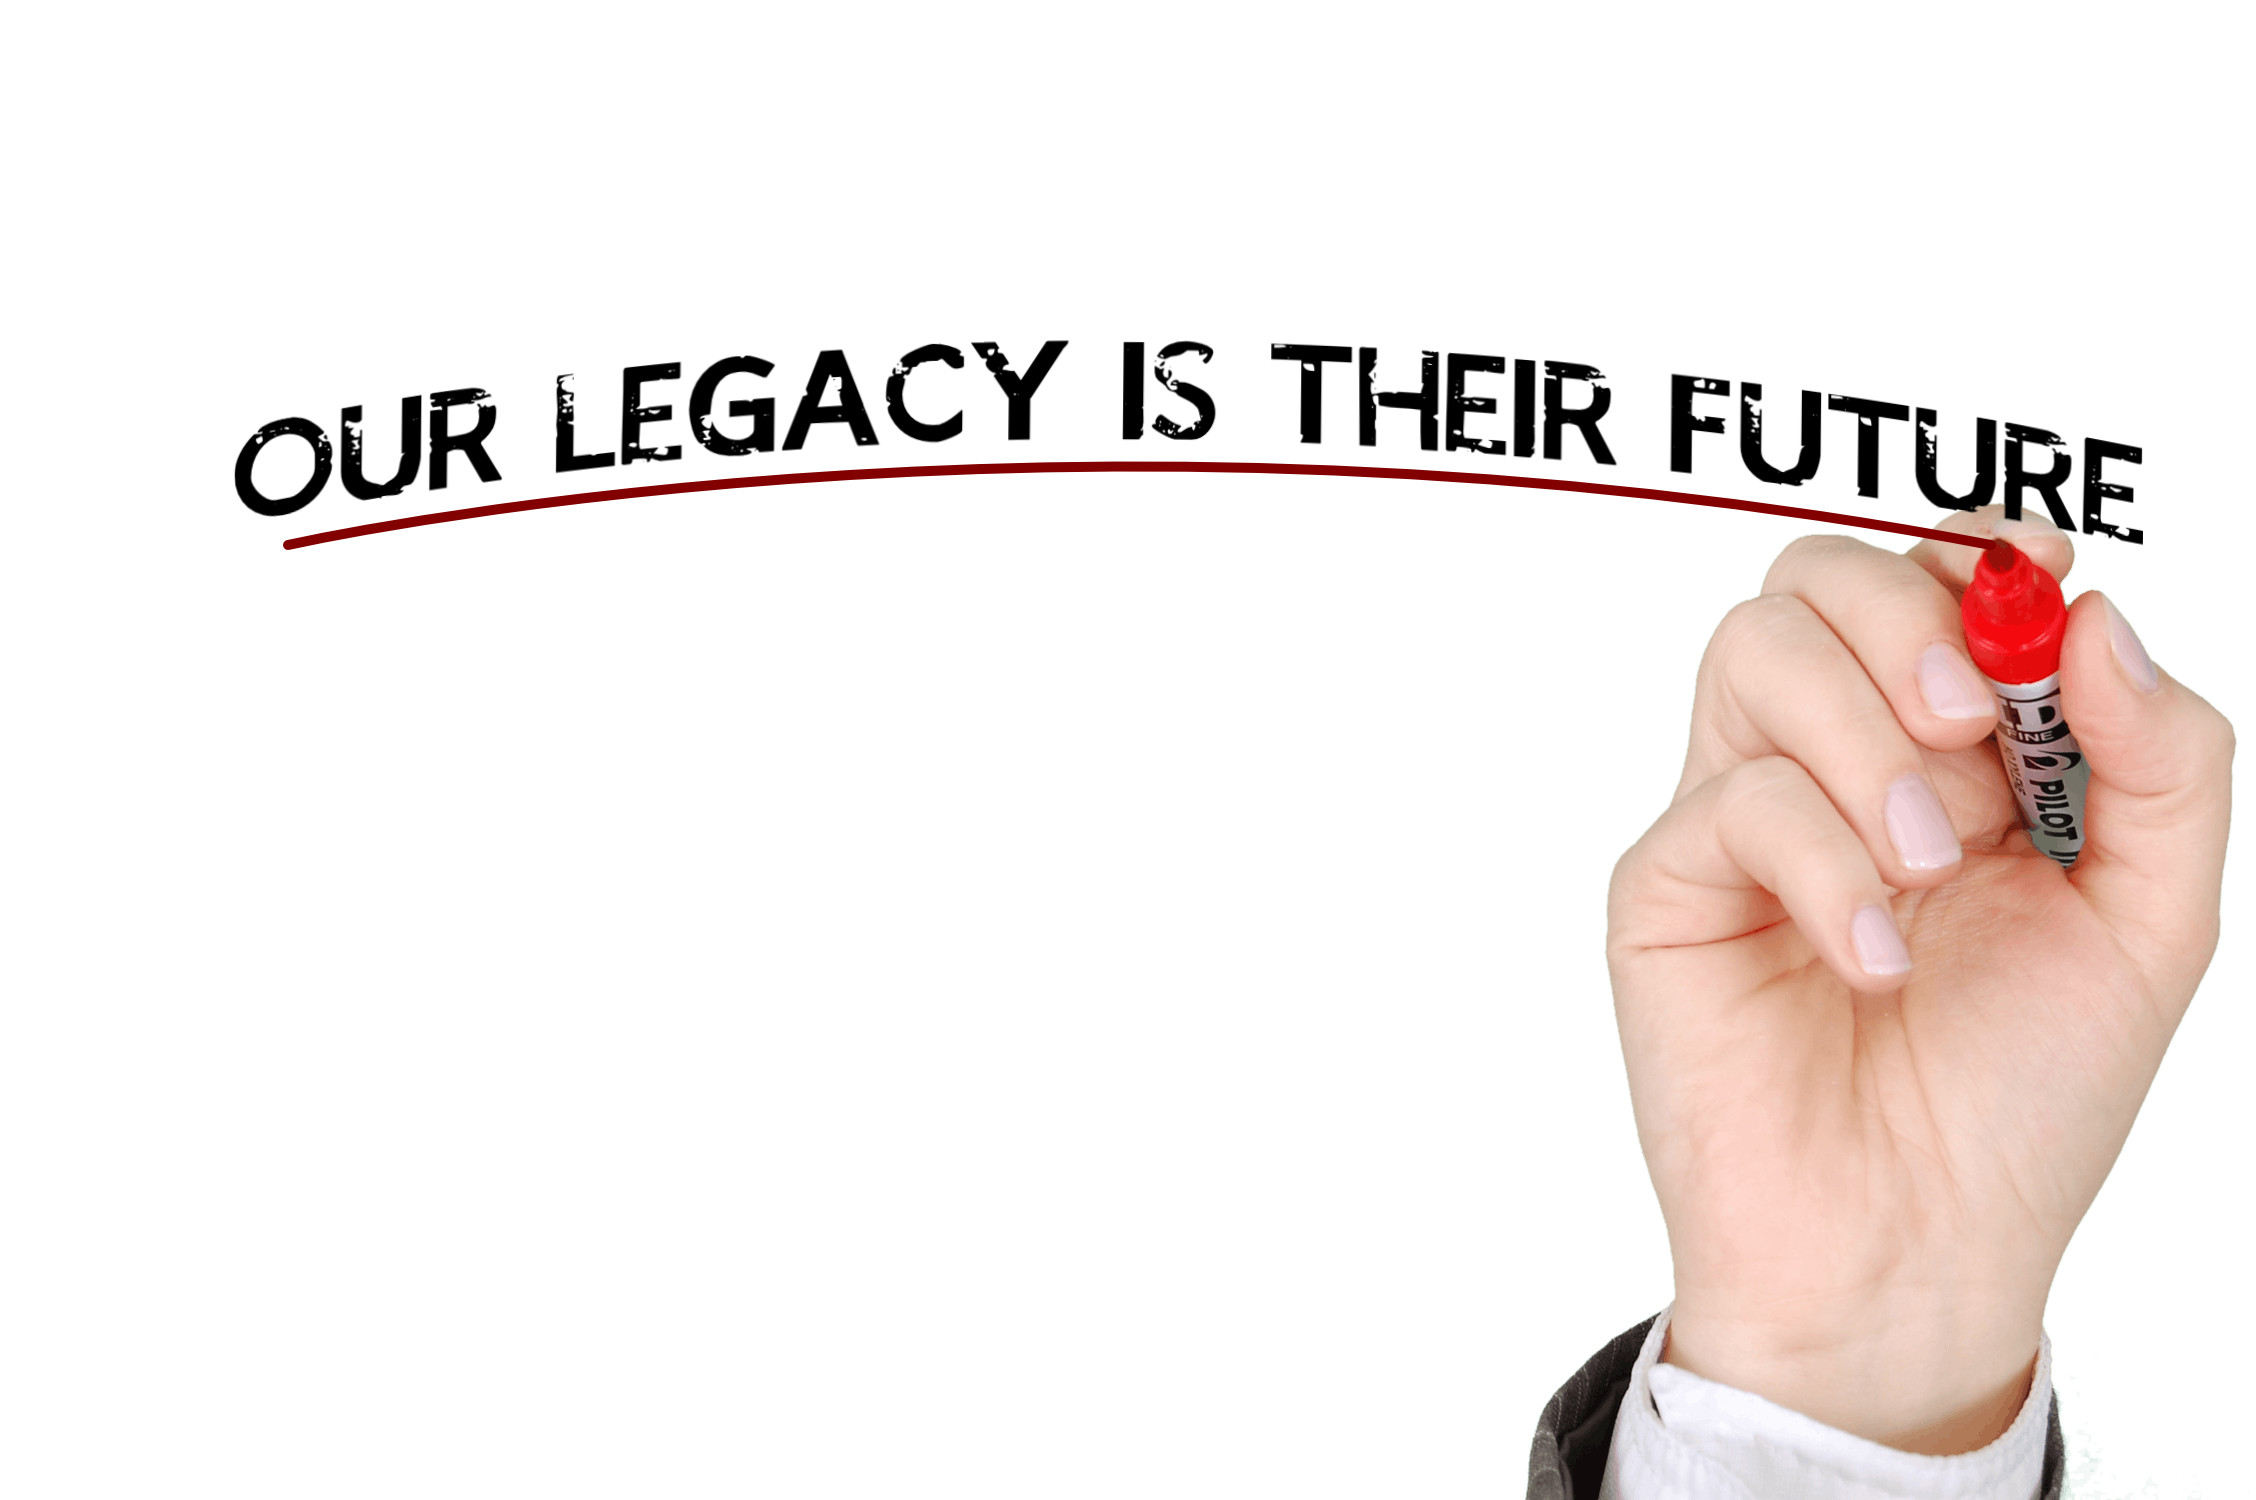 Our Legacy Makes A Change